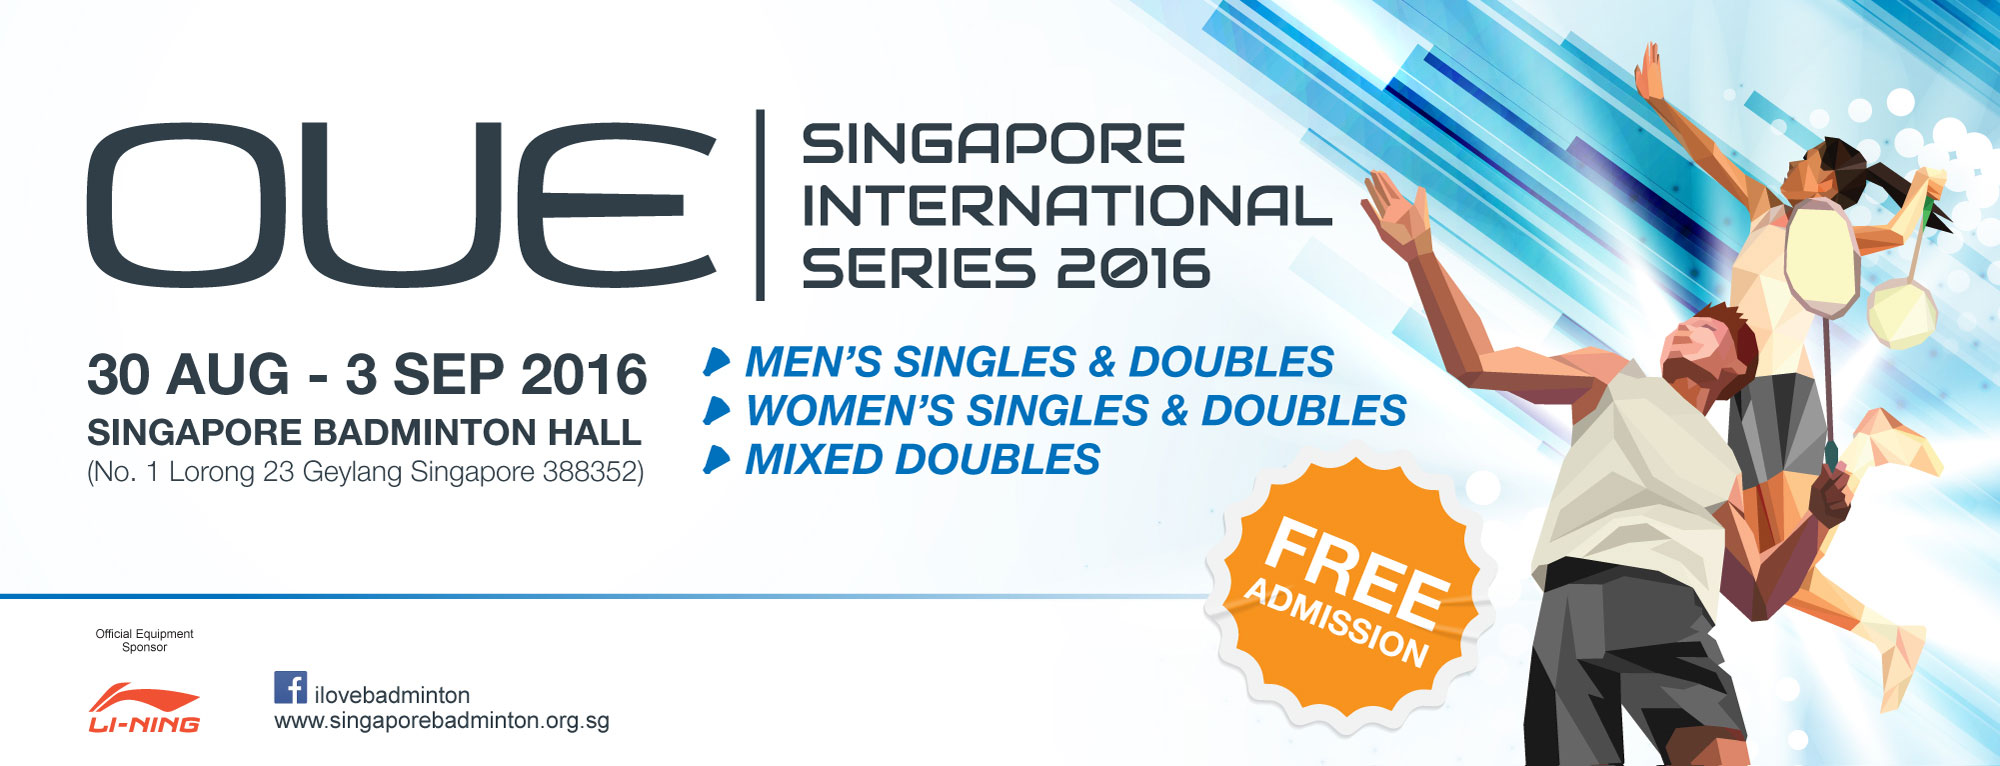 OUE Singapore International Series 2016